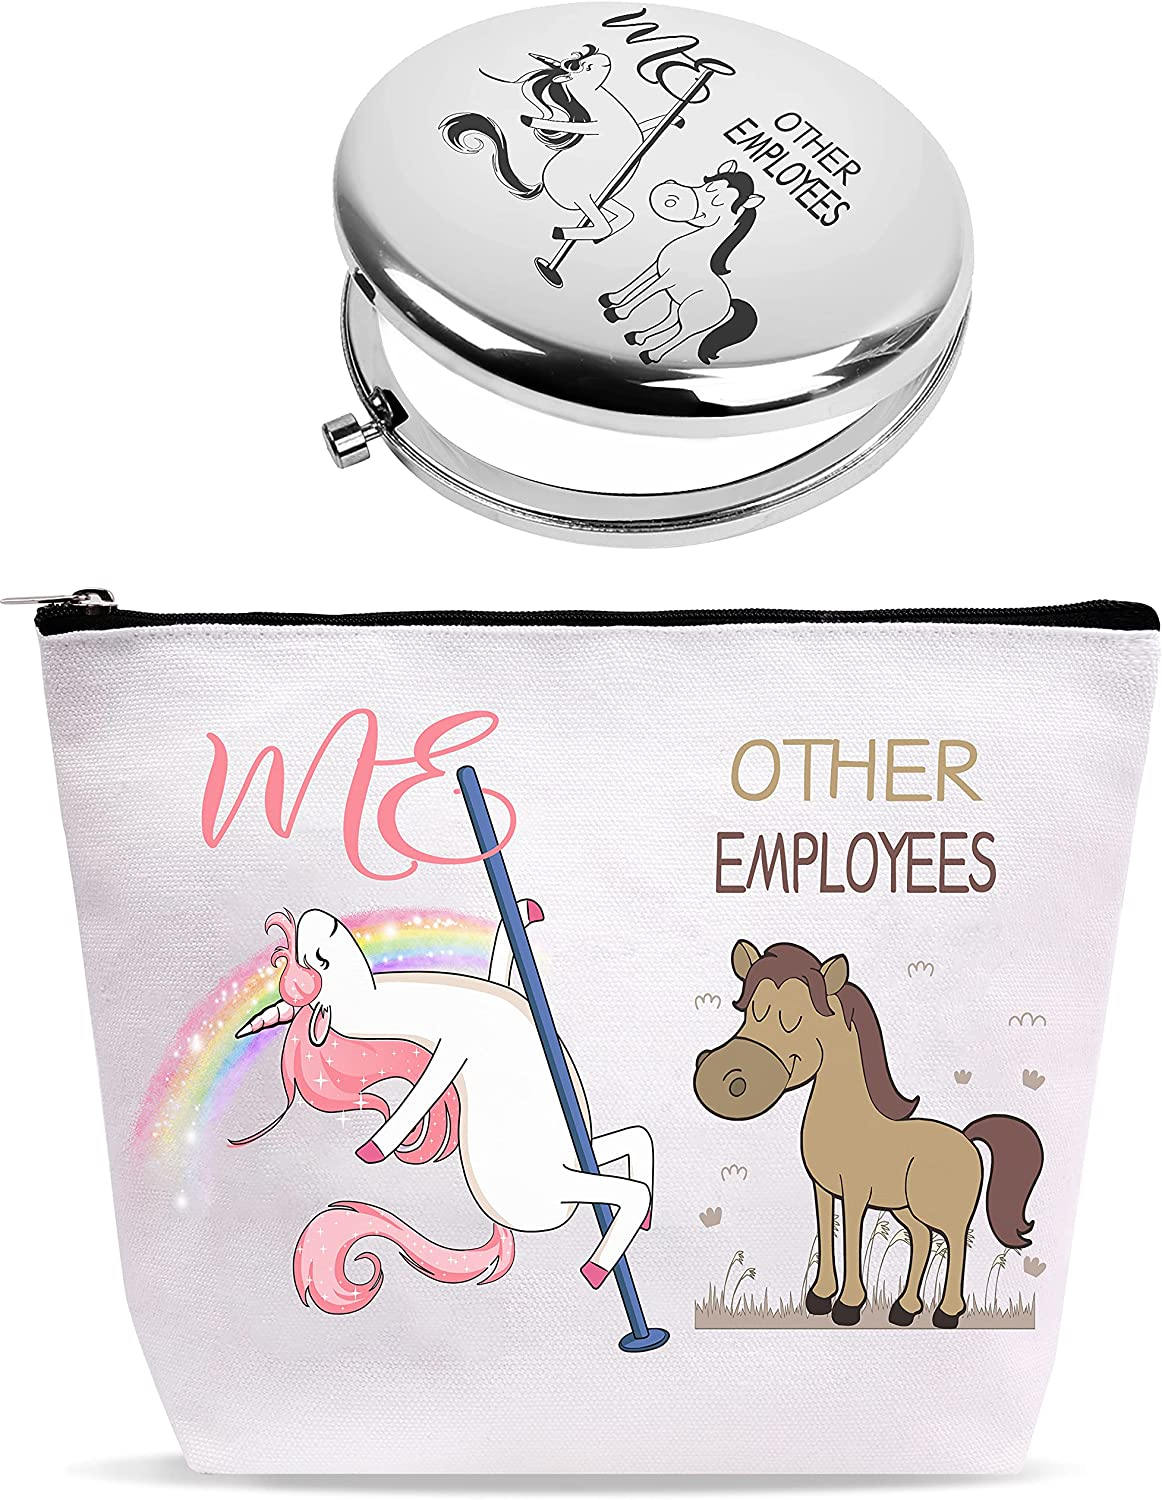 Employee Gifts for San Francisco Mall Women Best Employees Tampa Mall fo